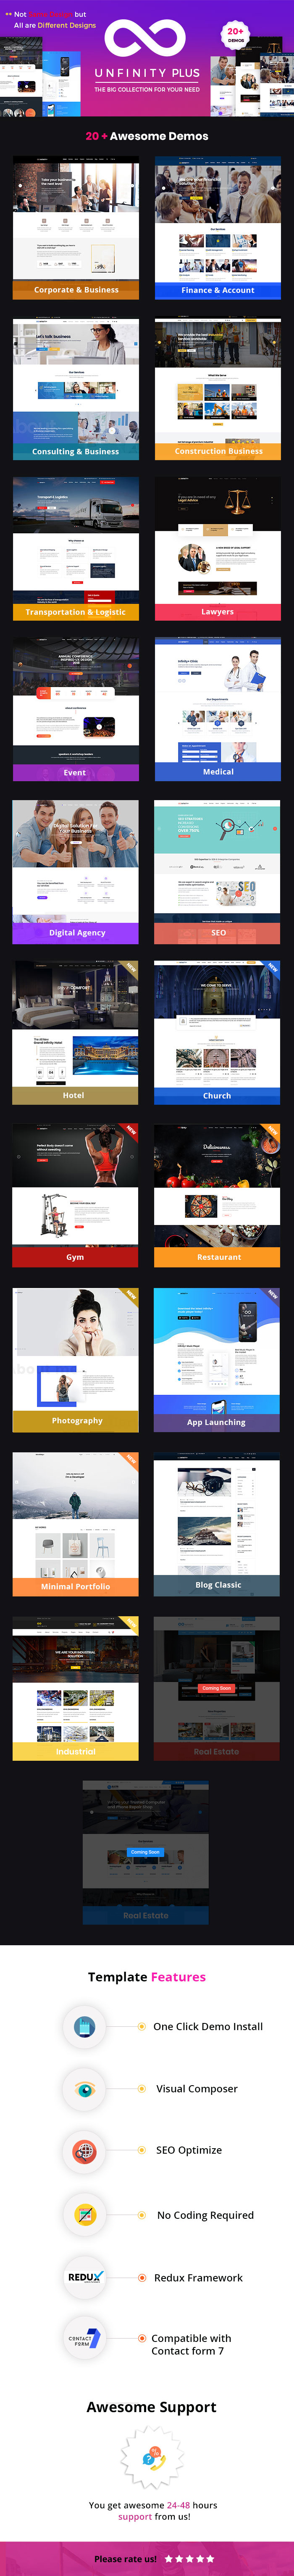 Unfinity Plus - One Page Multi-Purpose WordPress Theme